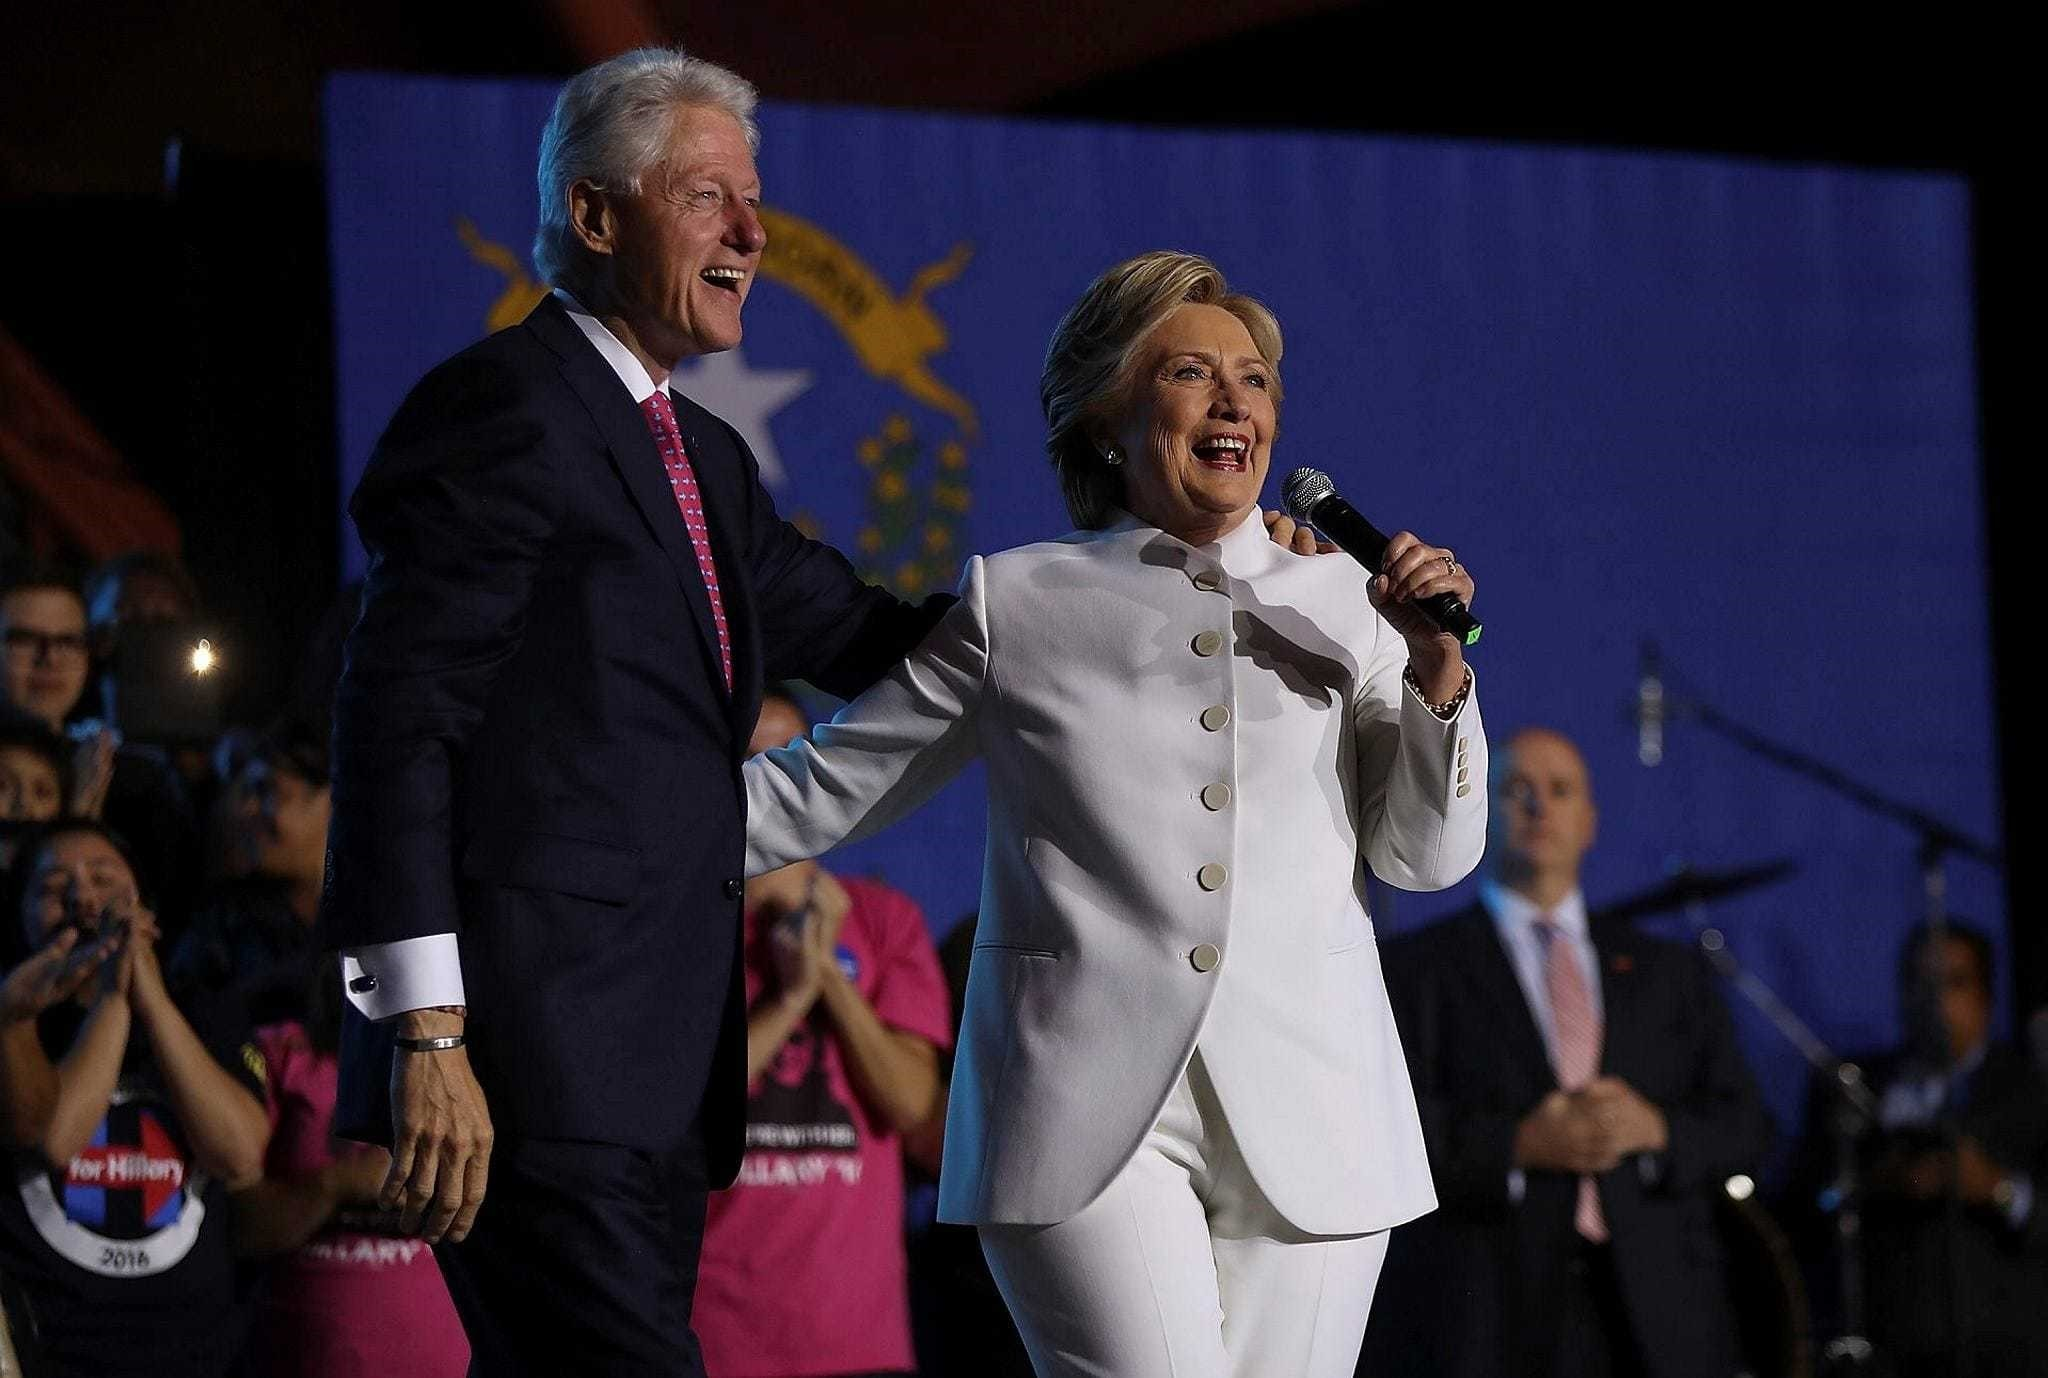 Democratic presidential nominee Hillary Clinton and her husband former U.S. President Bill Clinton speak during a debate watch party on Oct. 19.